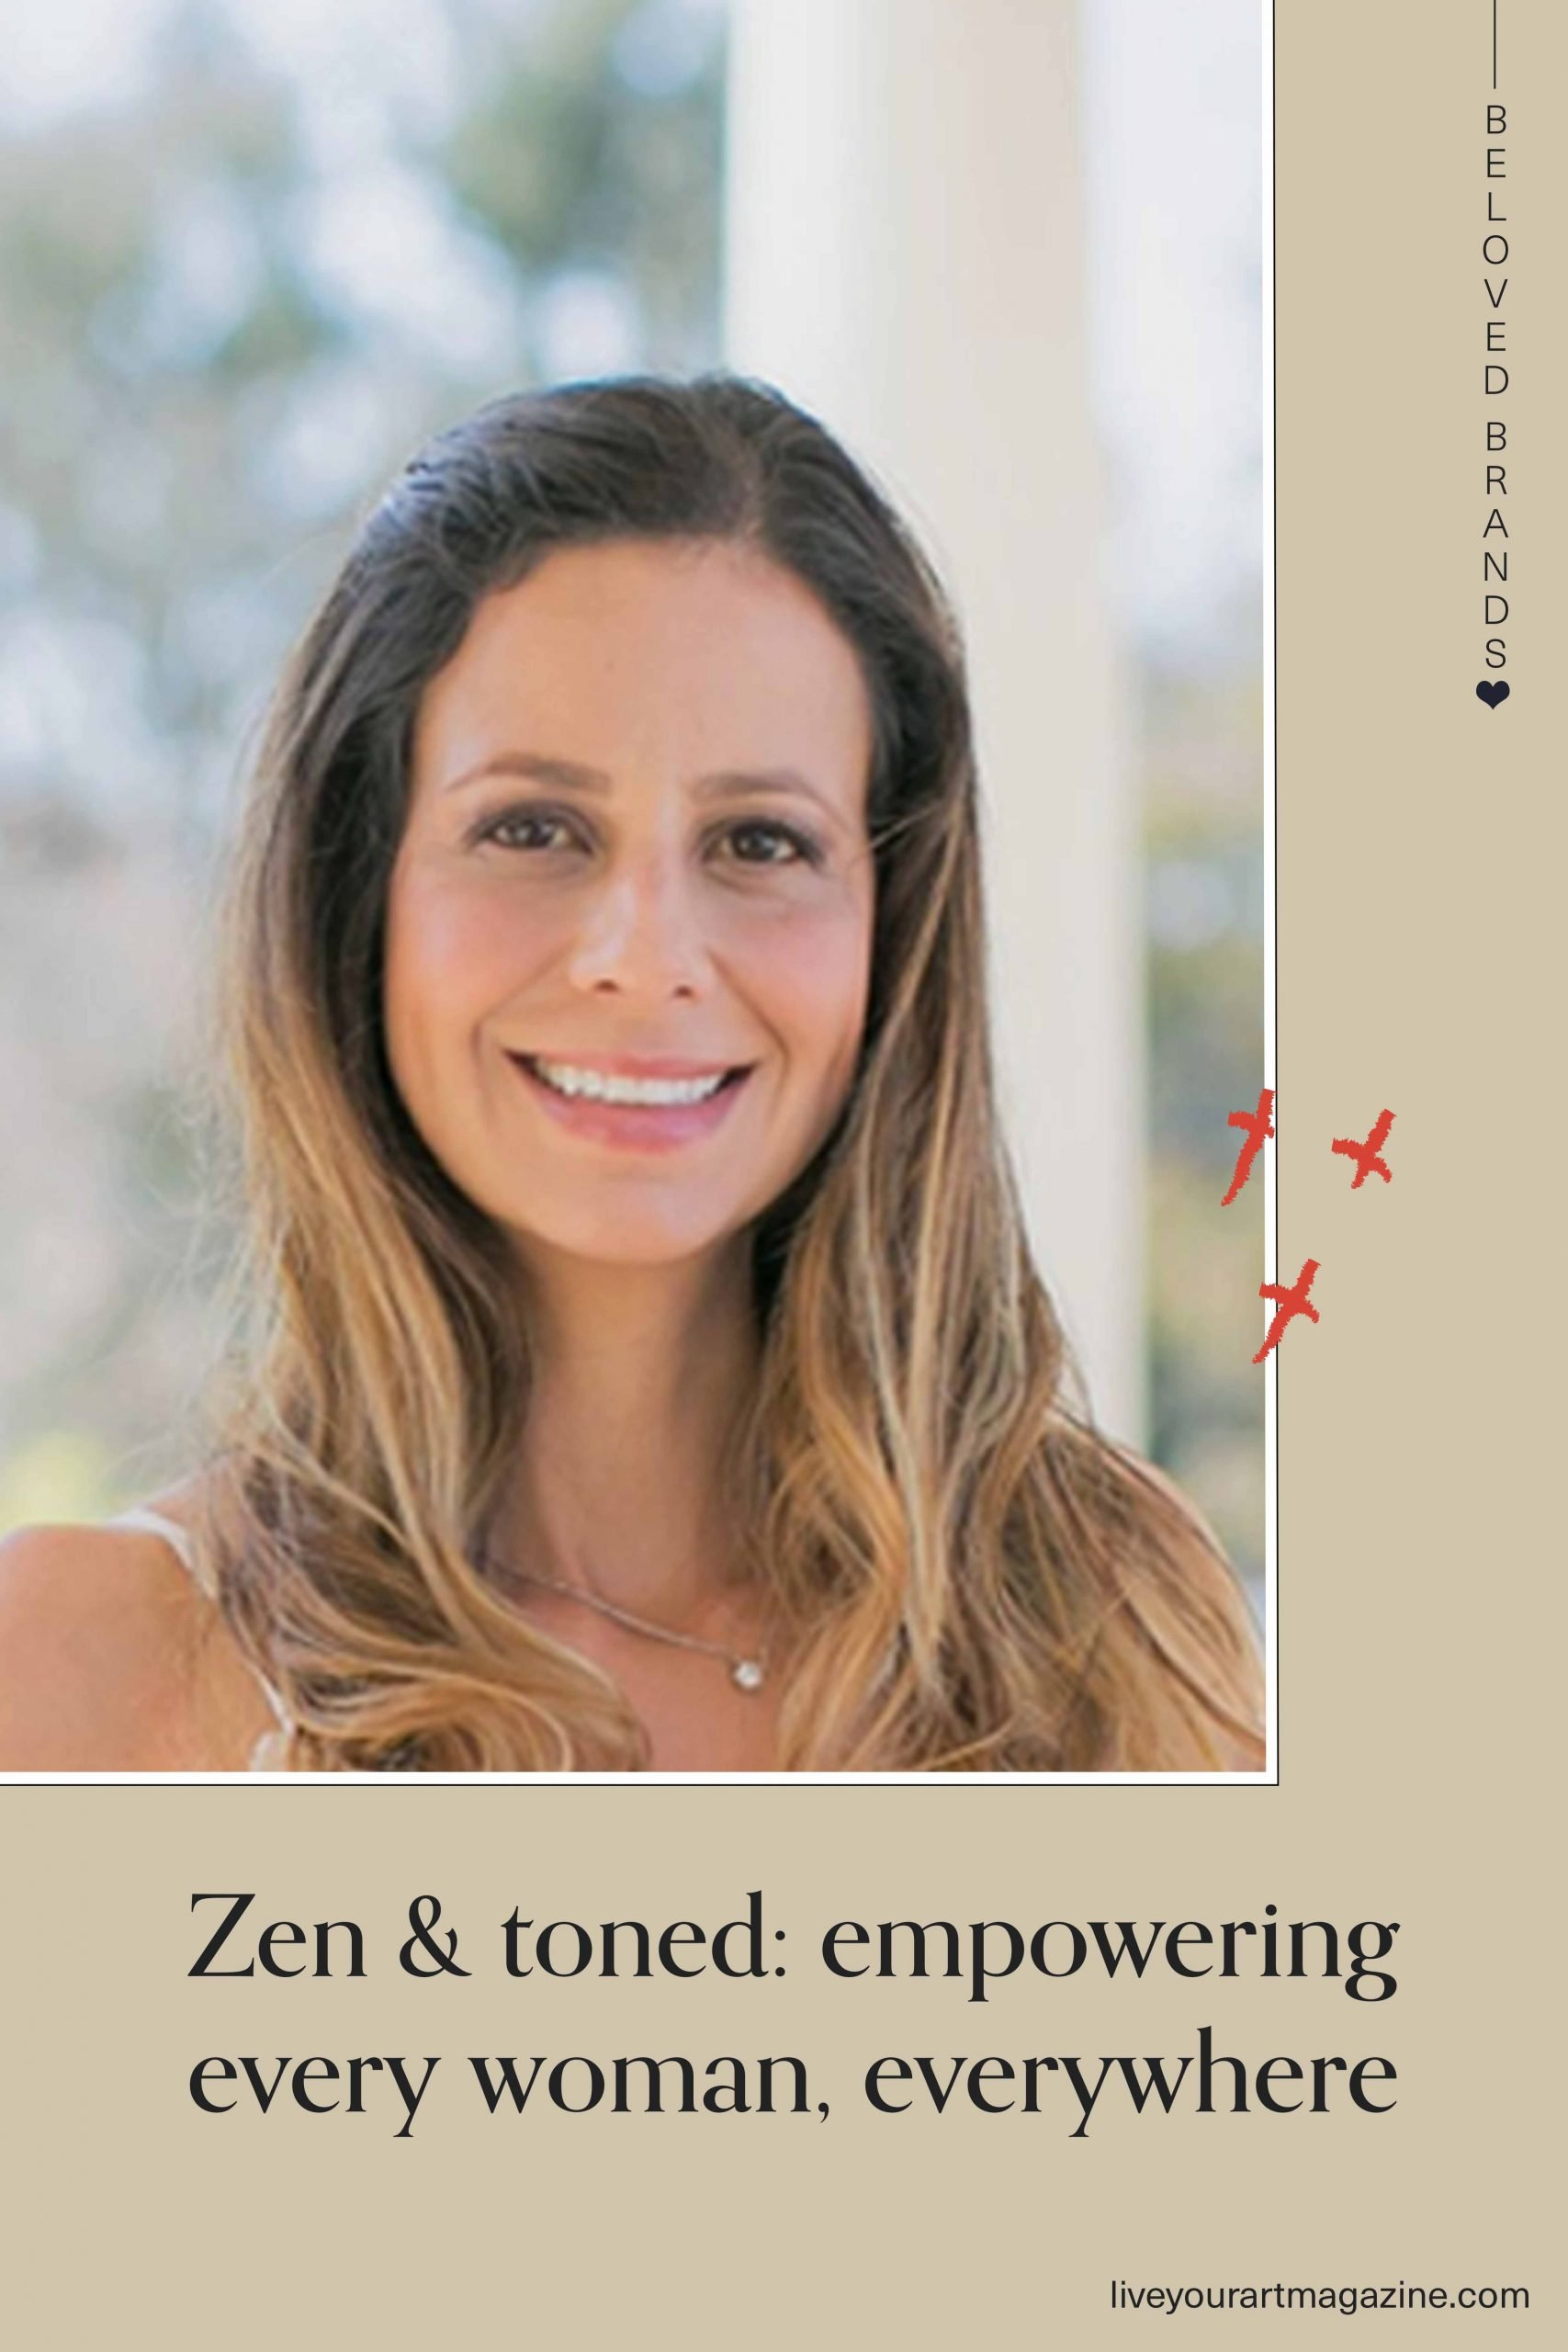 Zen & toned: empowering every woman, everywhere